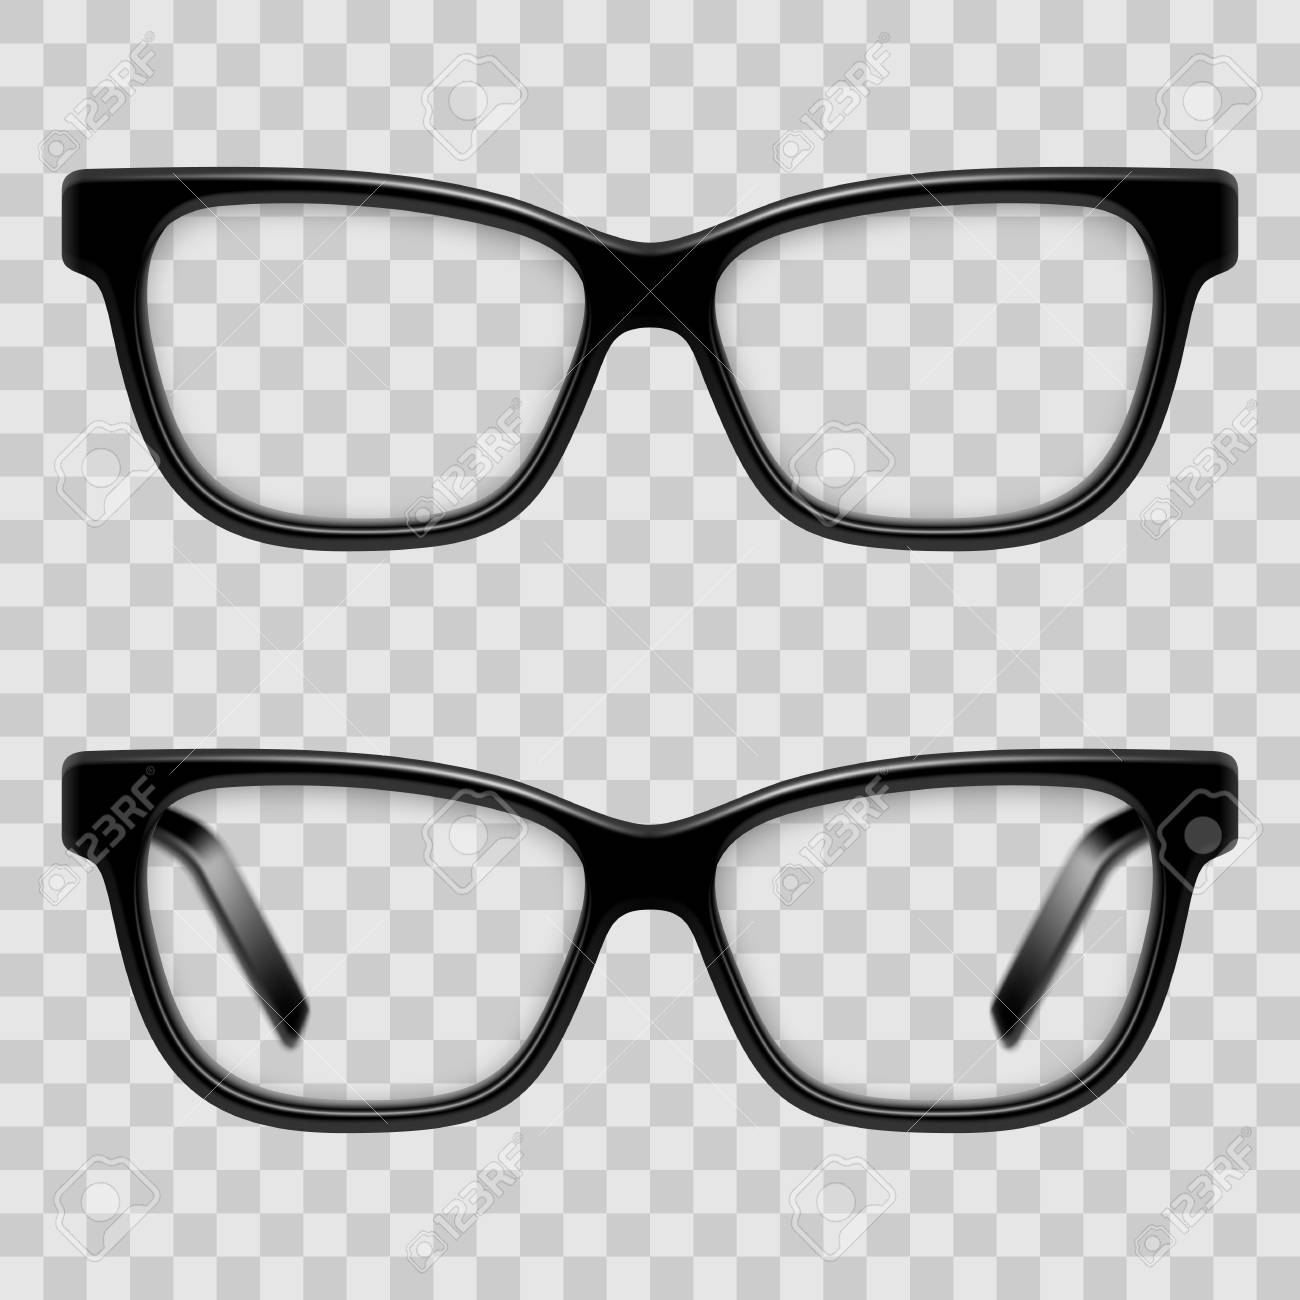 Geek Clipart Chasma - Nerd Glasses Png Transparent Transparent PNG -  640x480 - Free Download on NicePNG